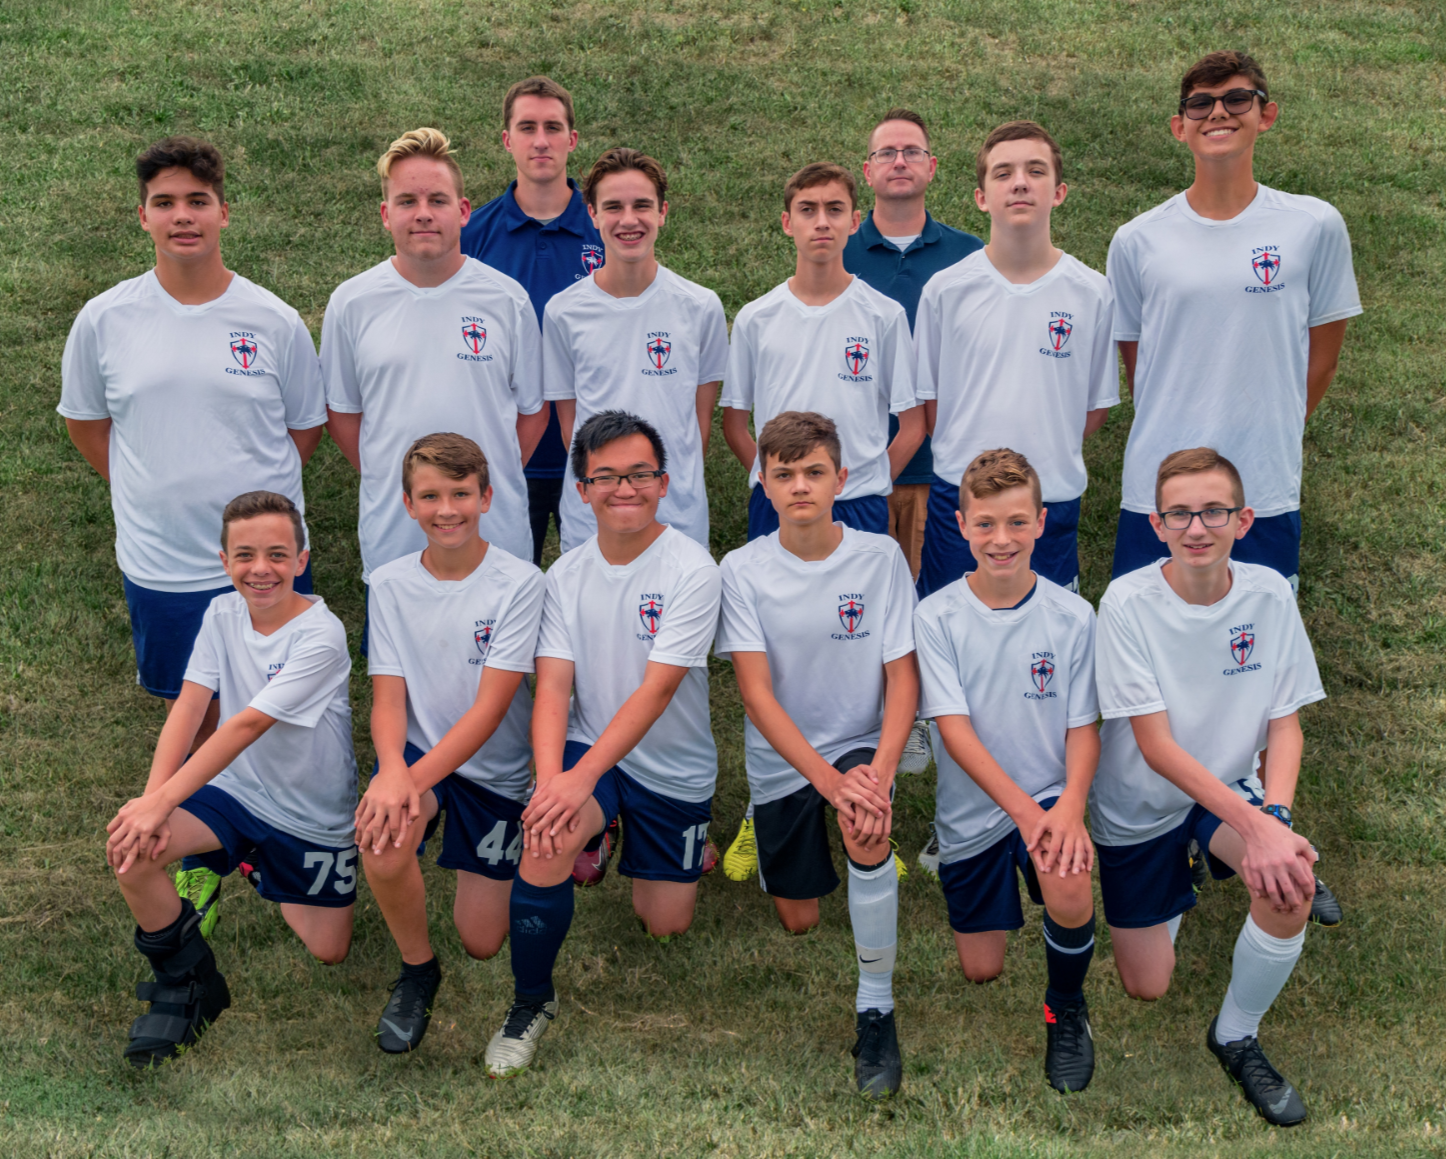 05 2019 Indy Genesis SO Boys JV (7200x39